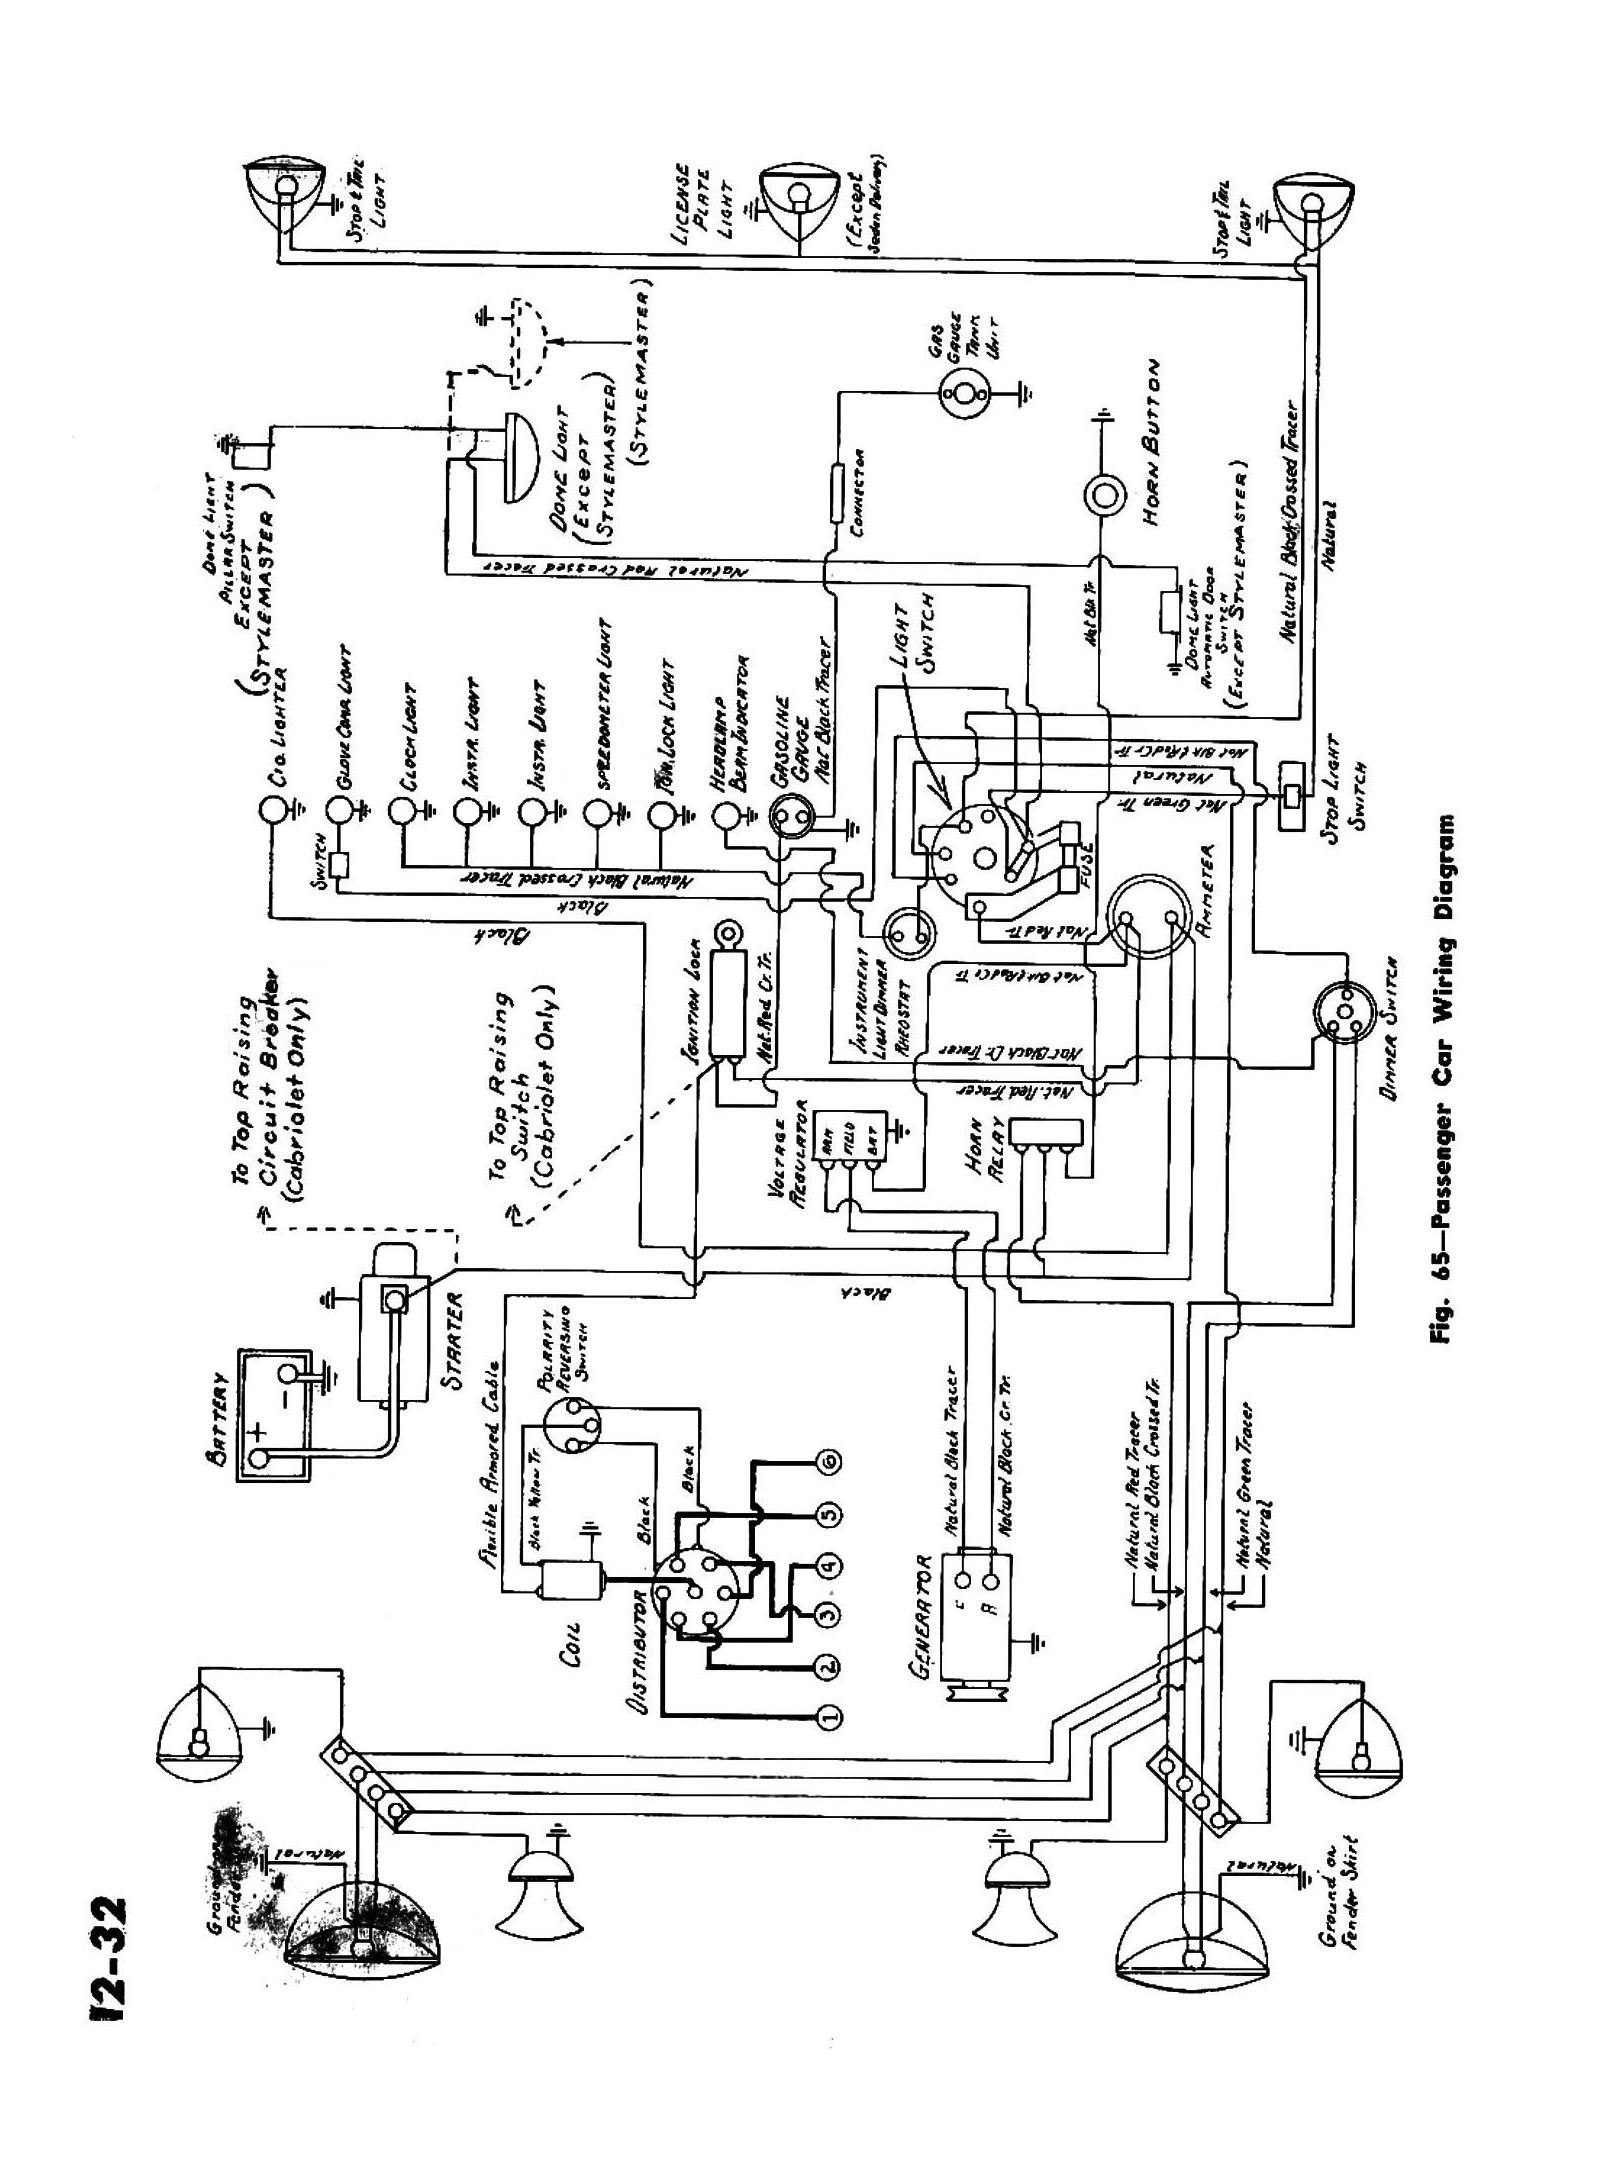 45car chevy wiring diagrams auto ac wiring diagram at mr168.co